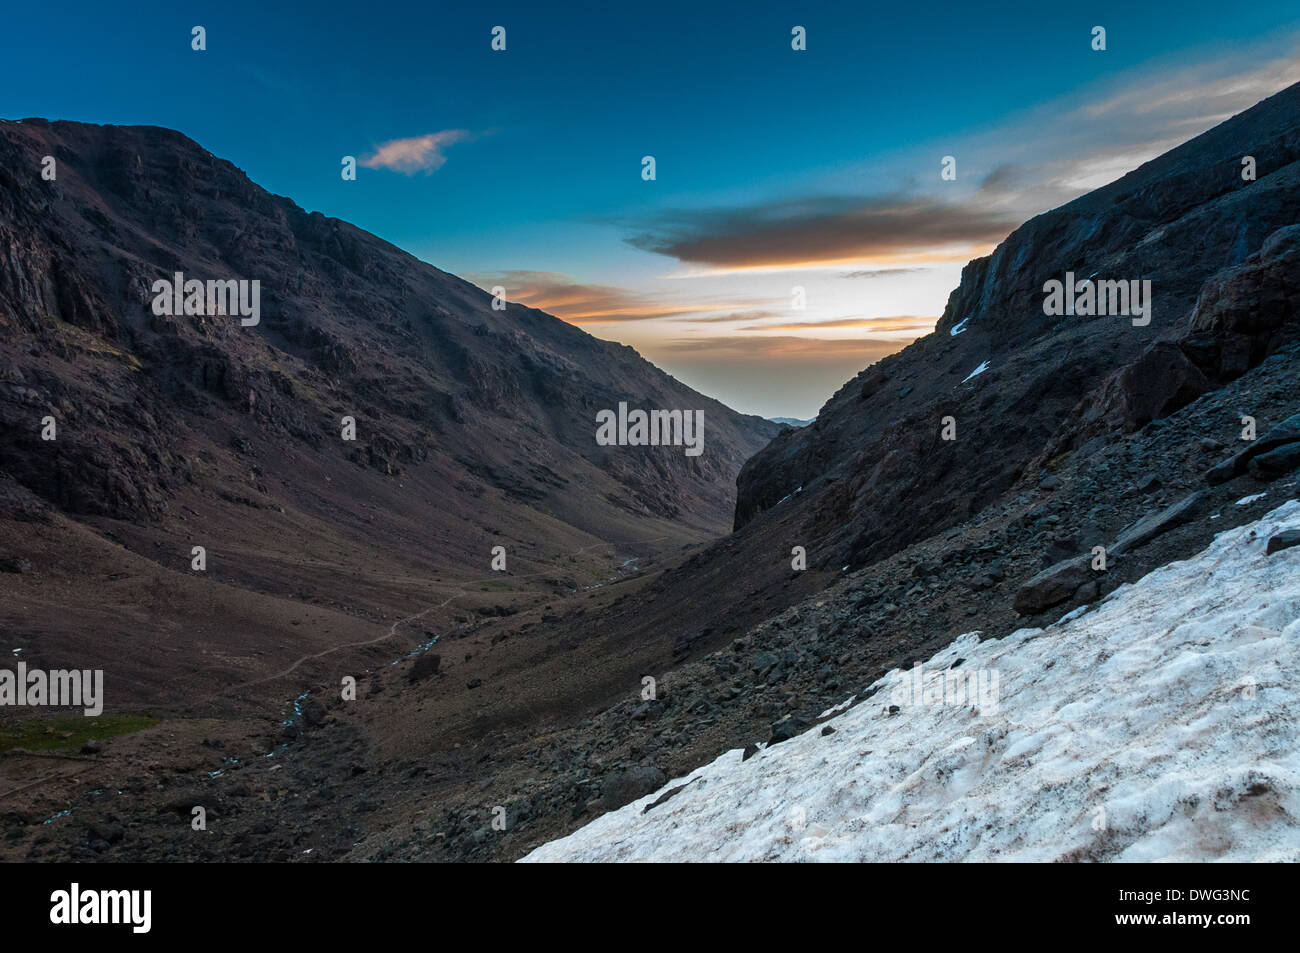 Sunrising during the early morning ascent of Toubkal in Morocco - Stock Image